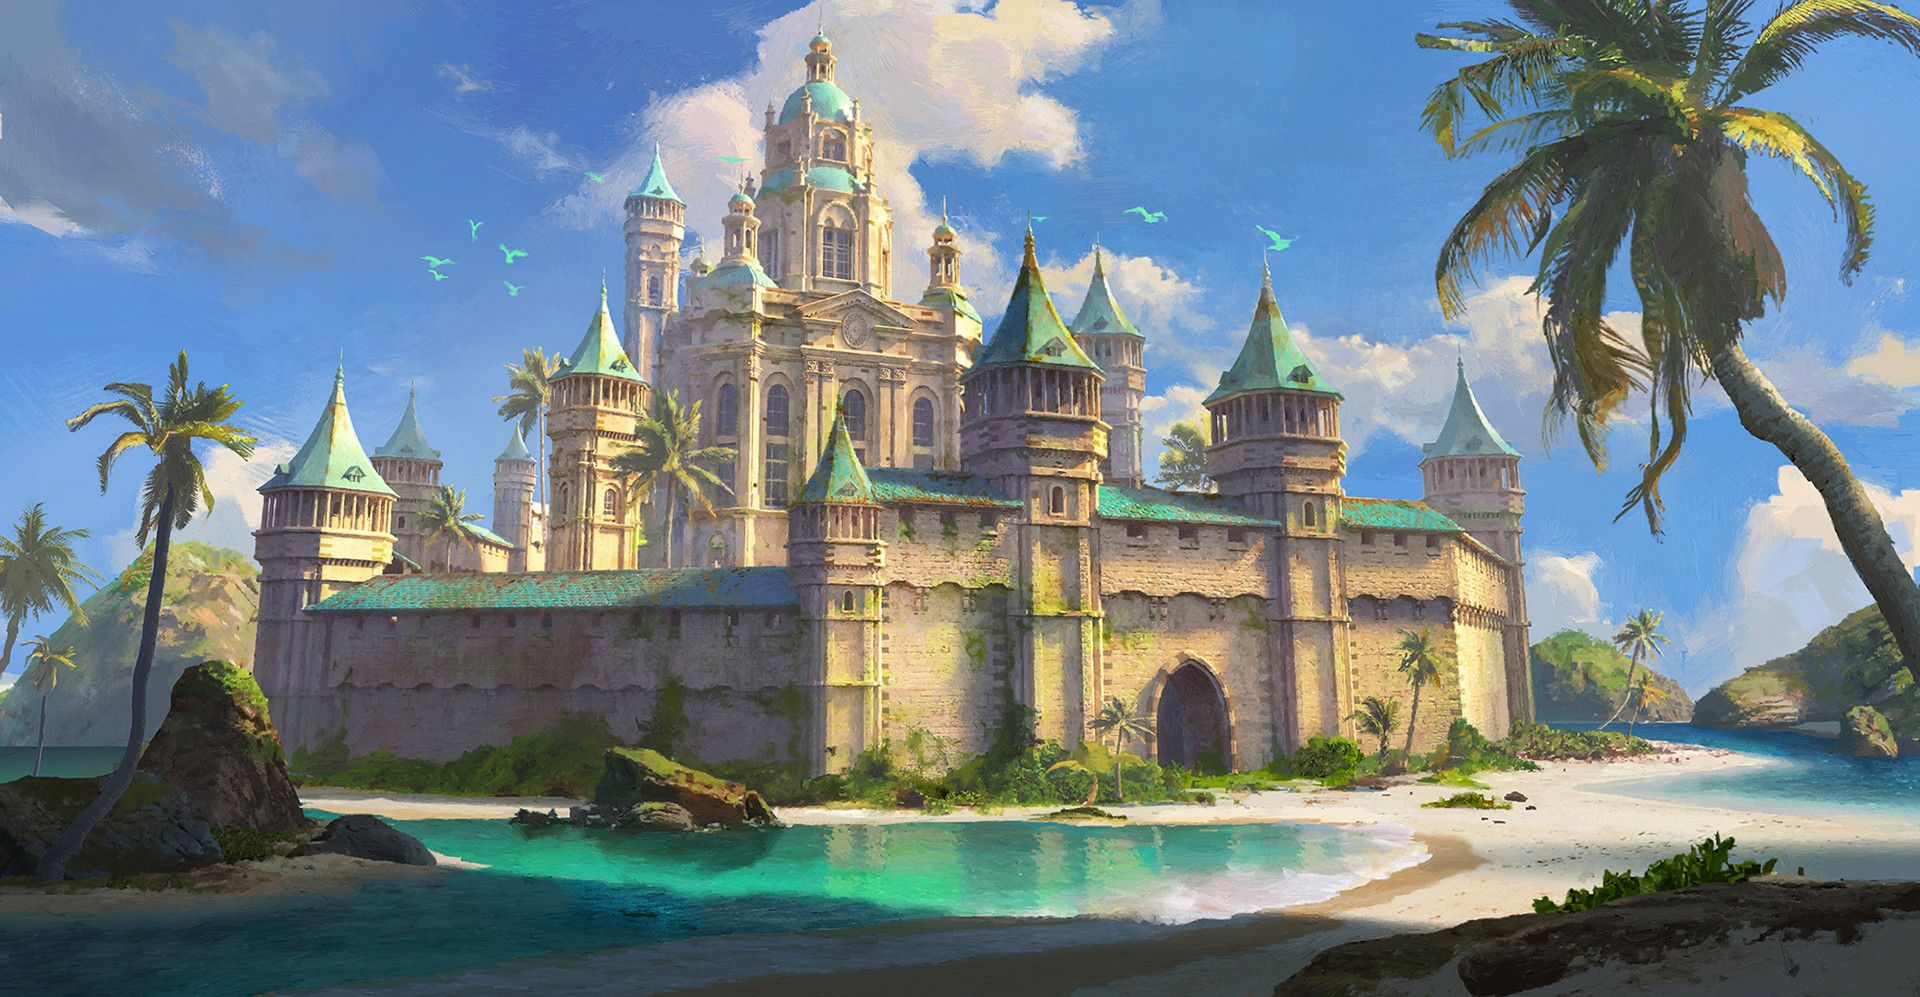 resortdaegeon jang | fantasy castle art | creative art, artist